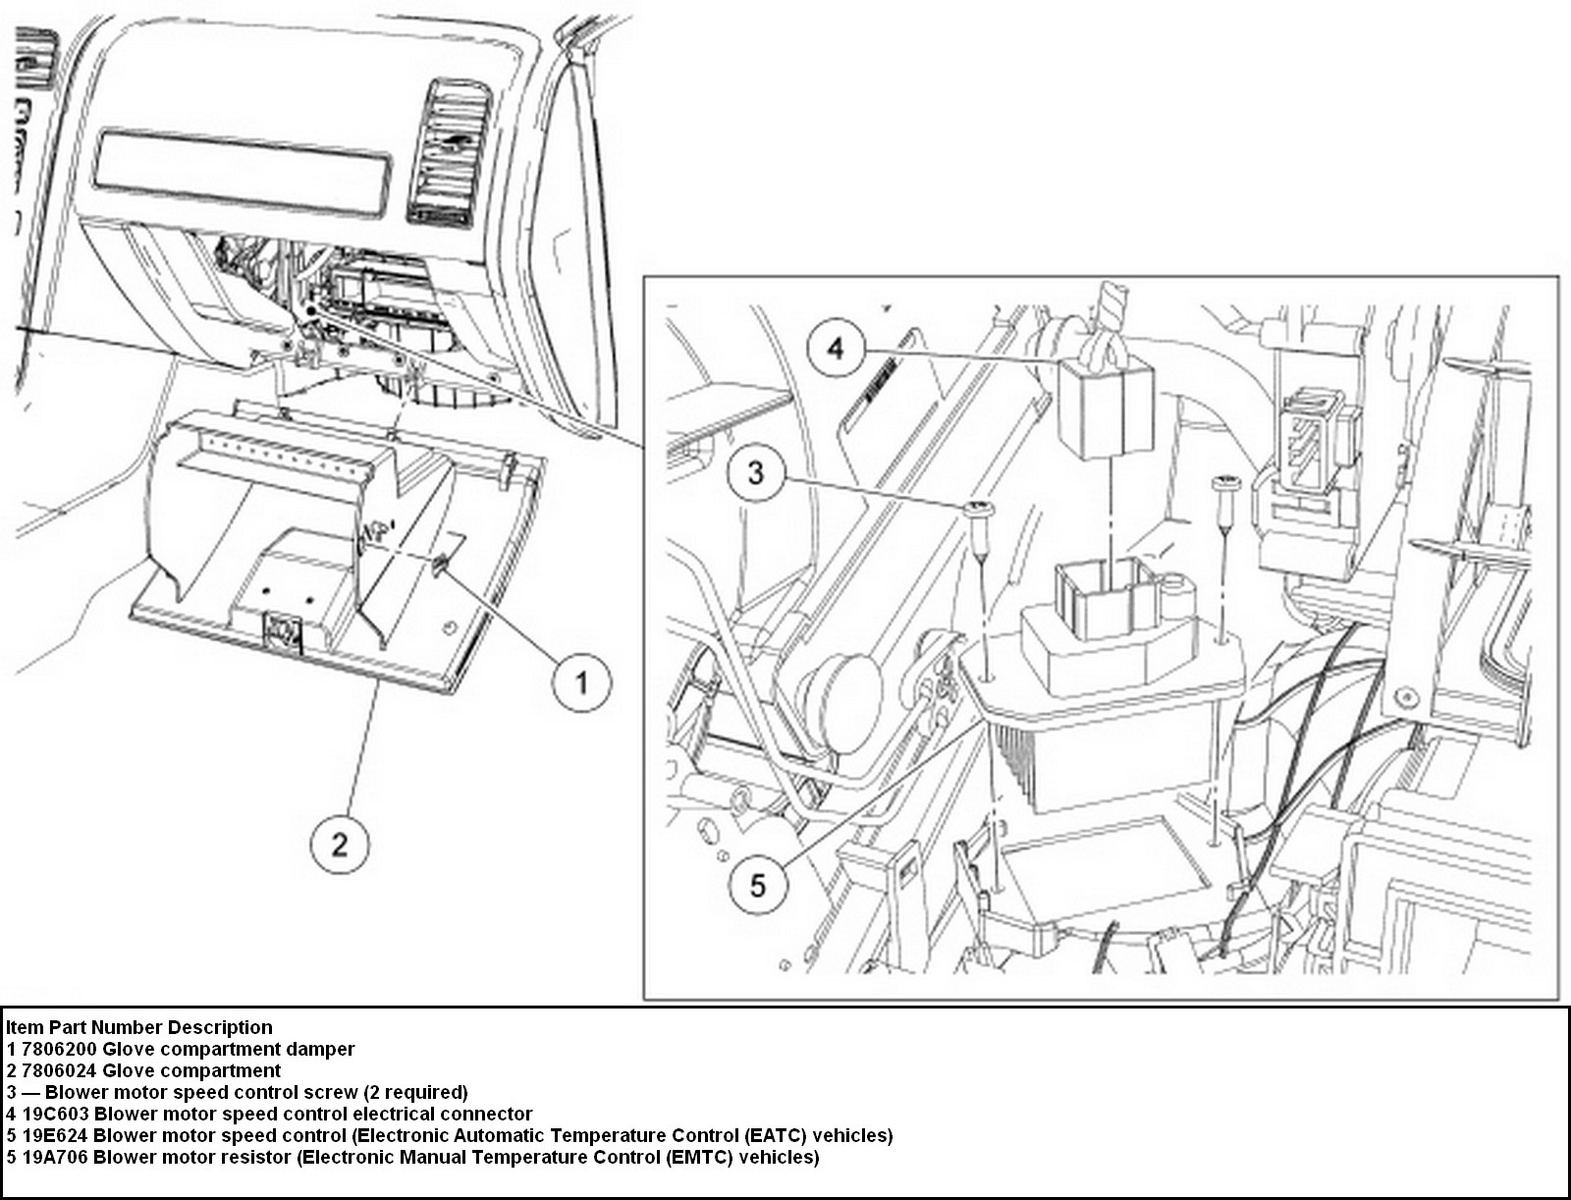 655833 Install Fuel Filter 2003 Jeep Grand Cherokee together with Vehicle Body Parts Diagram as well Wiring Diagram For 2003 Dodge Grand Caravan additionally Buick Park Cabin Air Filter Location in addition 1998 Buick Lesabre Wiring Diagram Schematics. on jeep grand cherokee cabin air filter